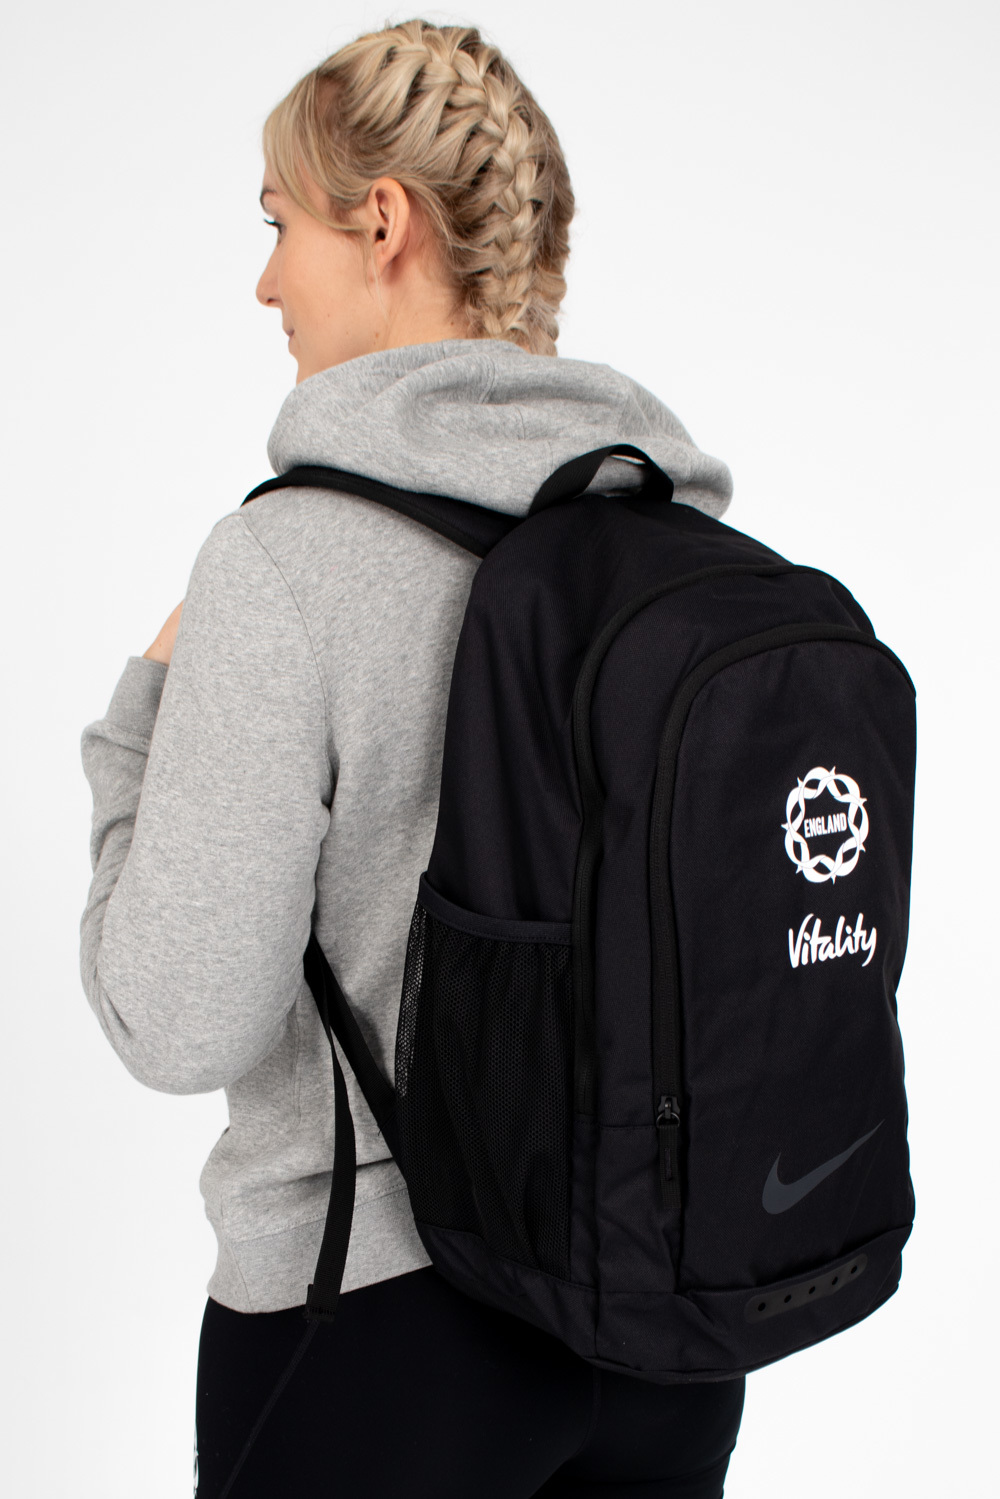 England Netball Backpack